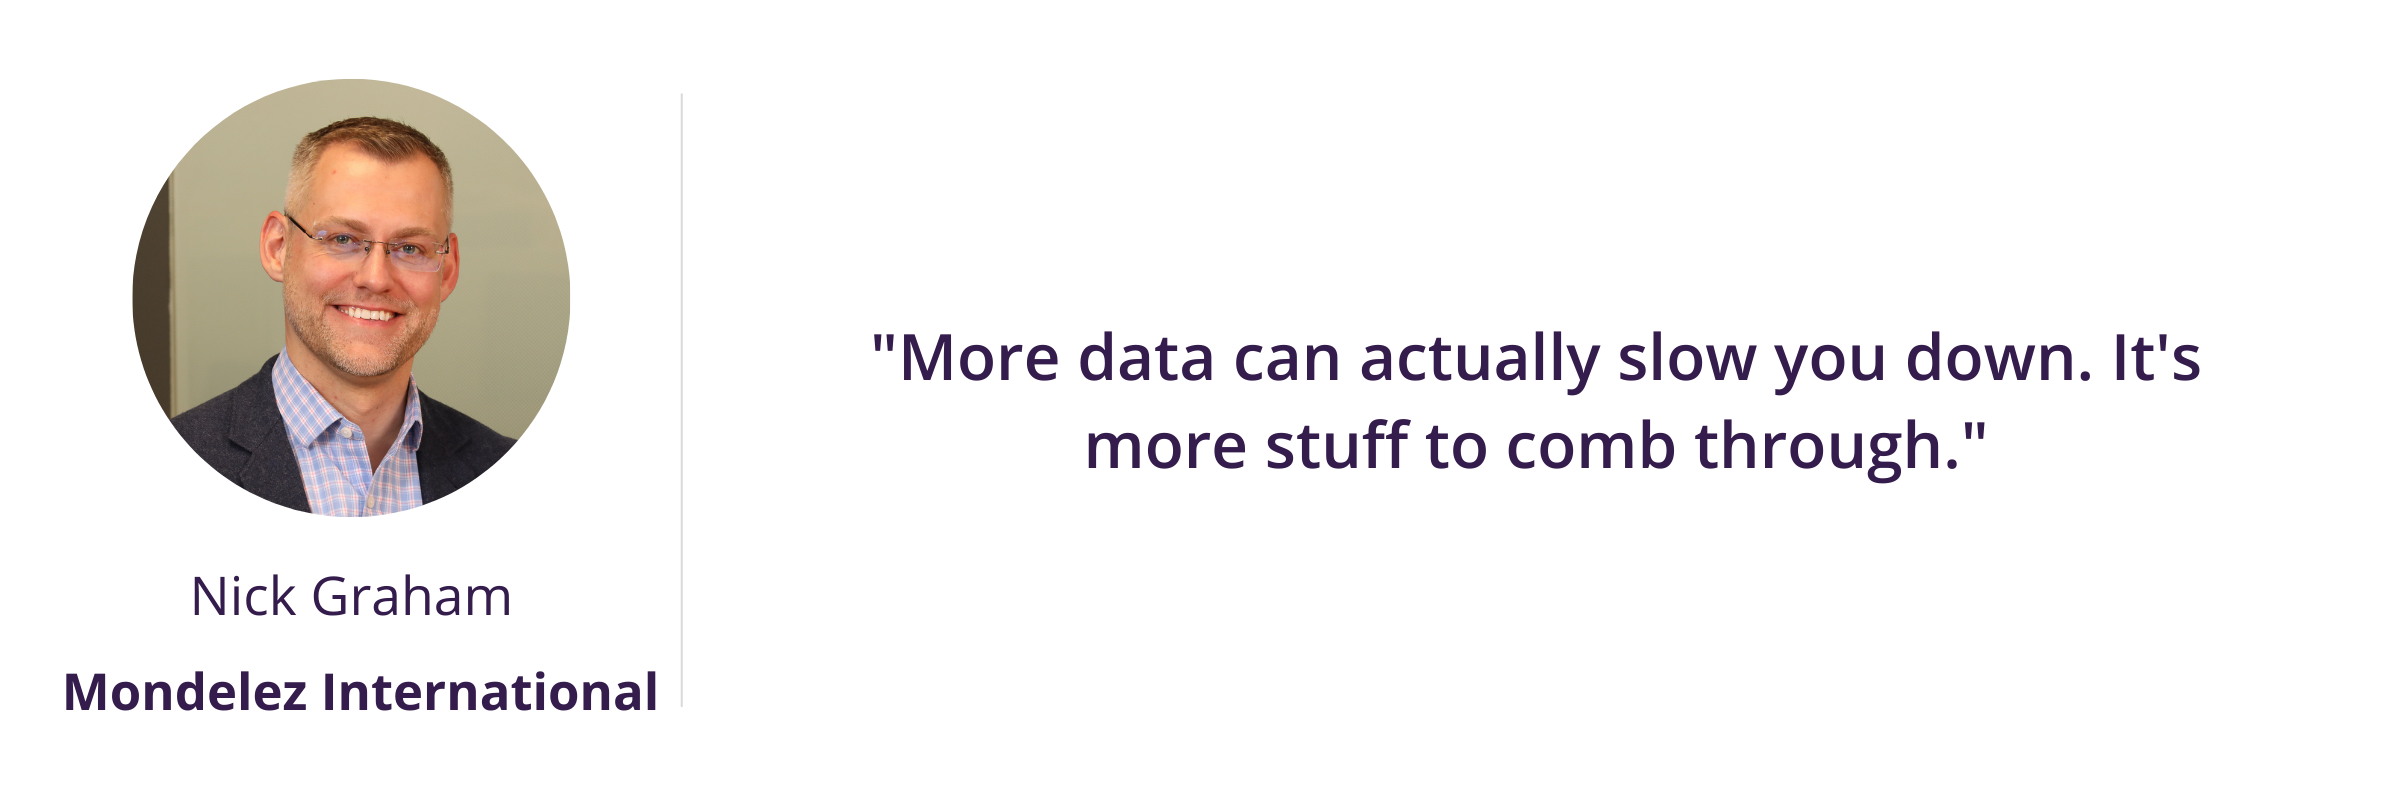 """""""More data can actually slow you down. It's more stuff to comb through."""""""